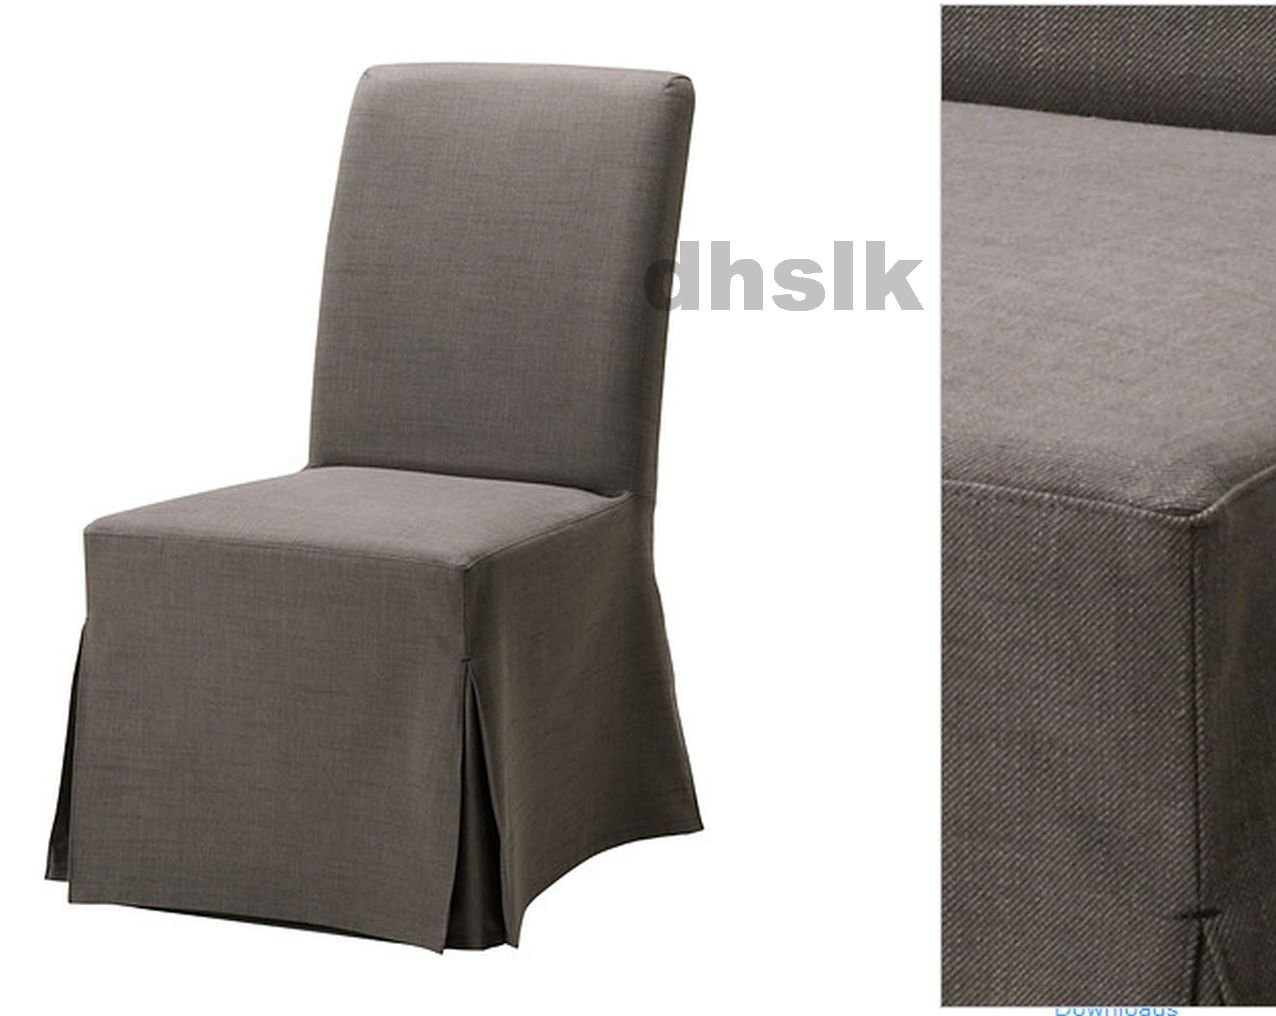 ikea henriksdal chair slipcover cover skirted svanby gray grey long 21 w 54cm last ones. Black Bedroom Furniture Sets. Home Design Ideas